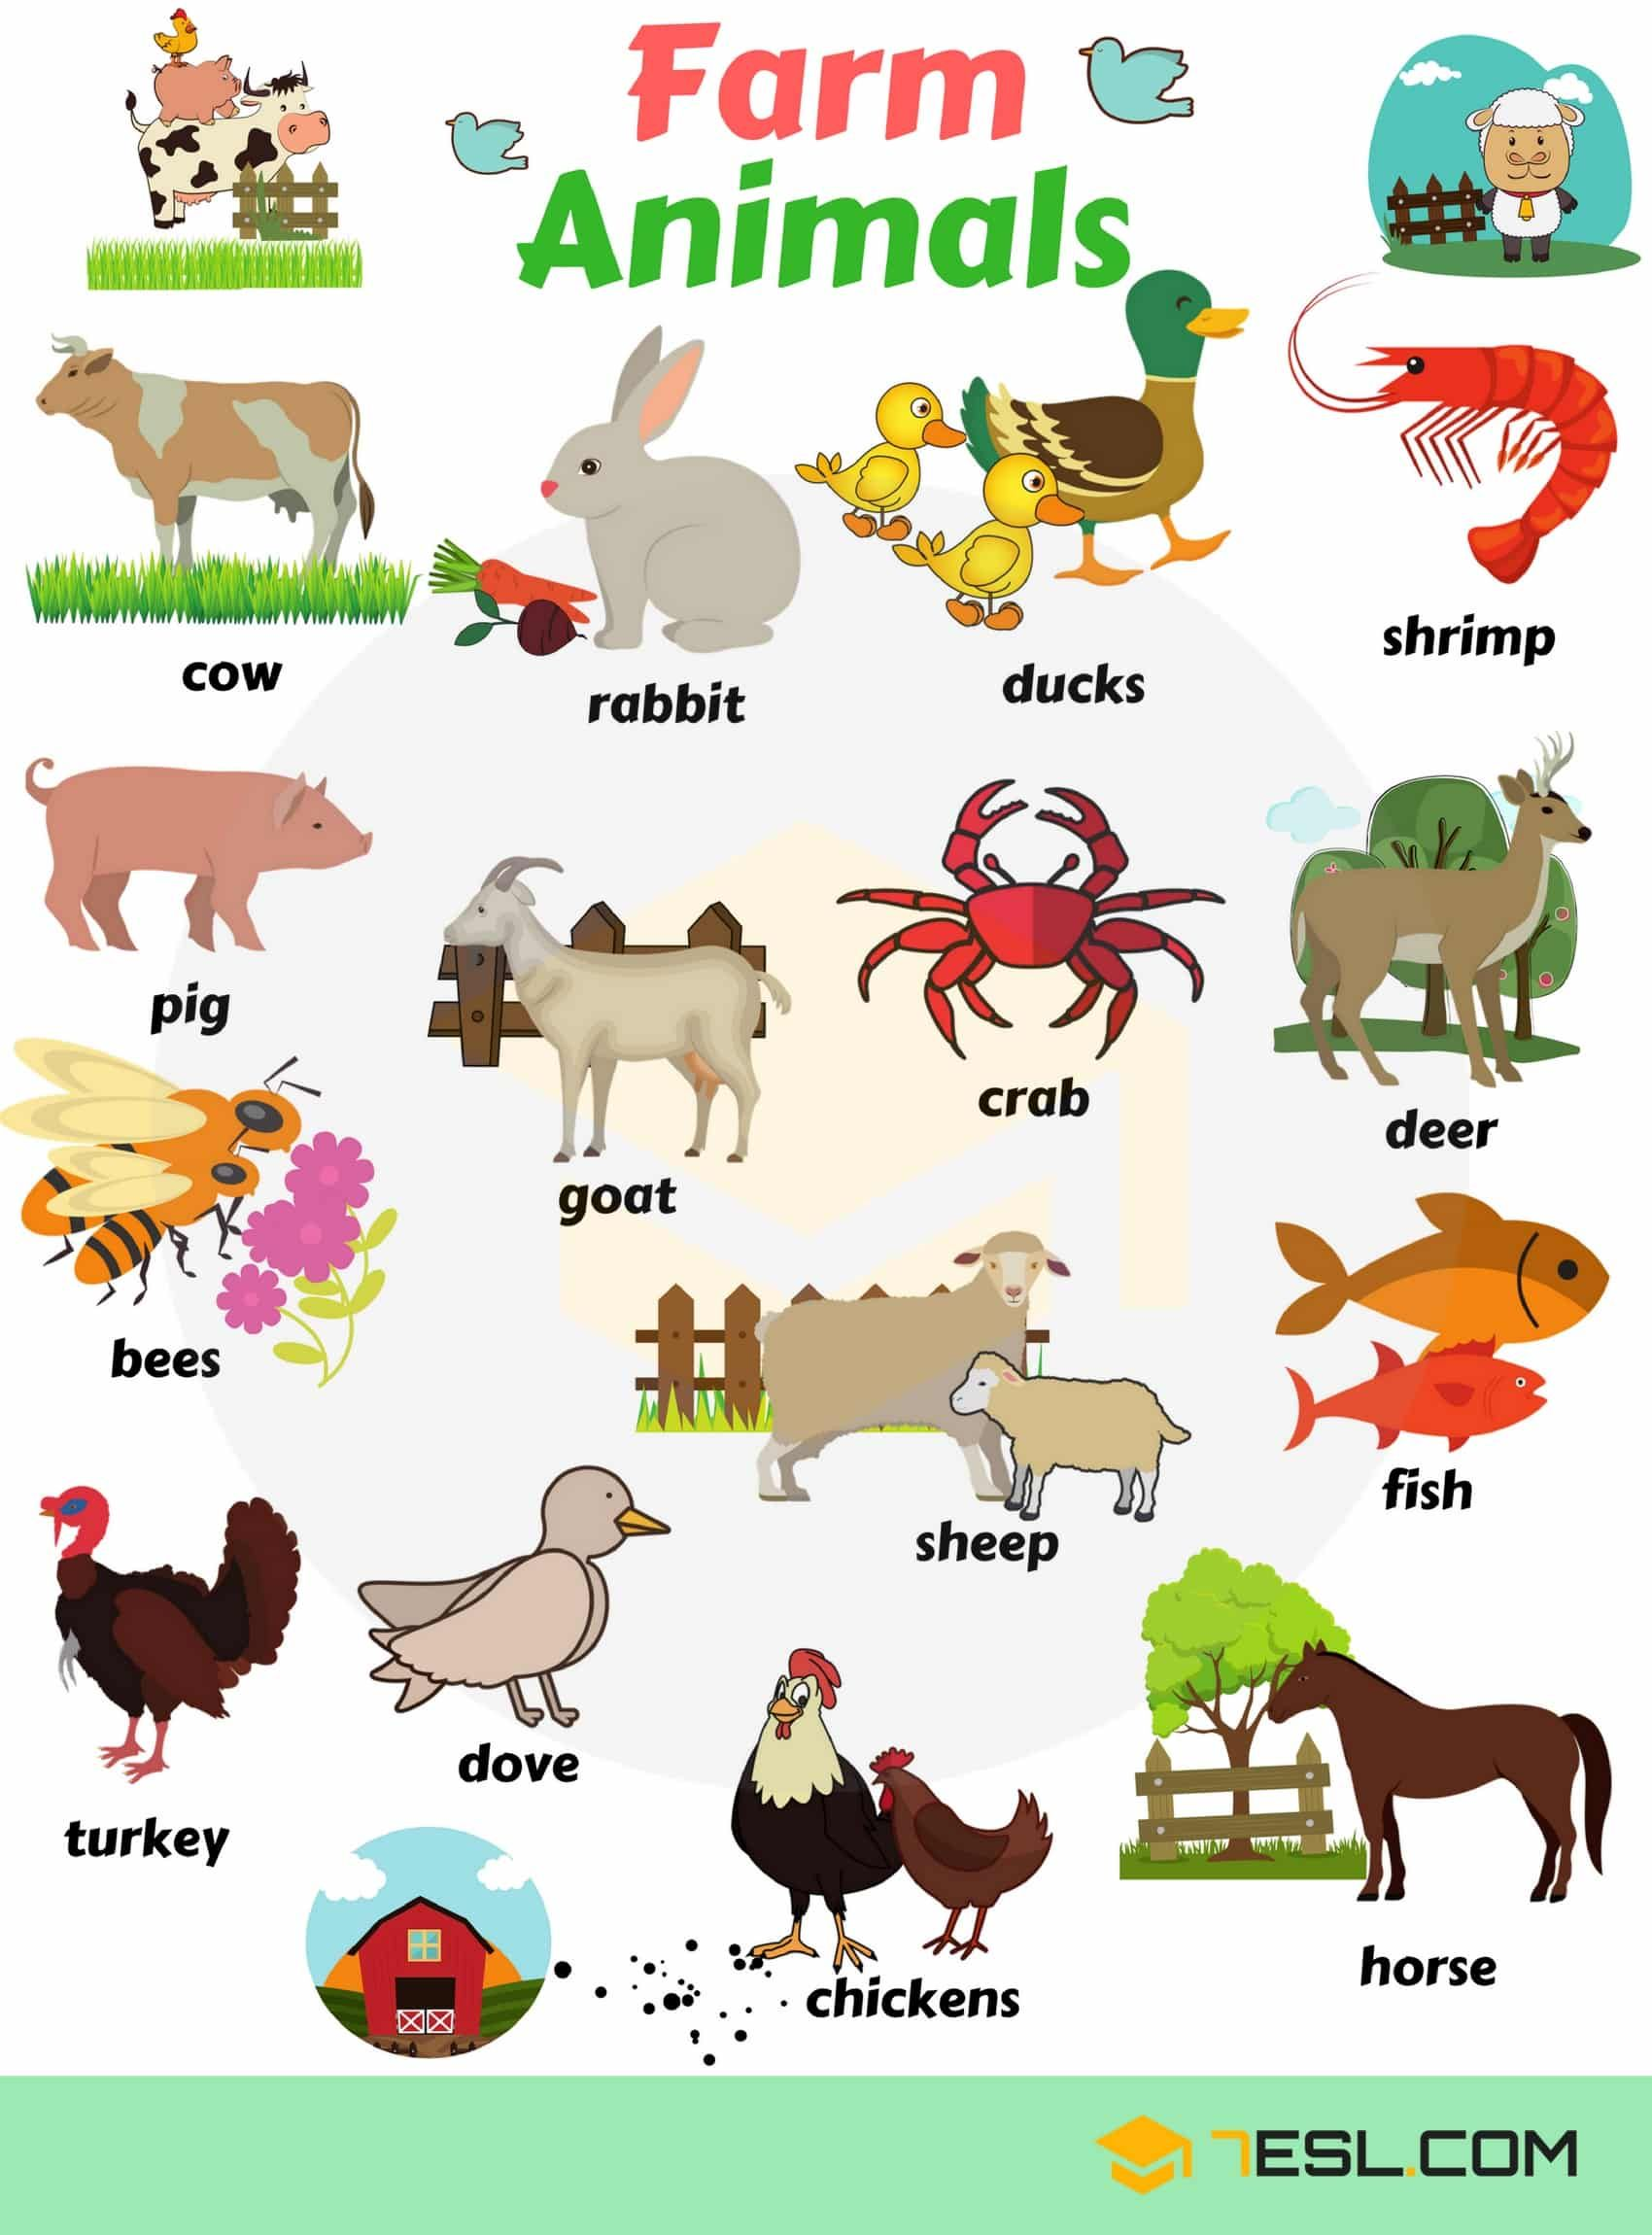 Farm Animals List Domestic Animals Names With Pictures